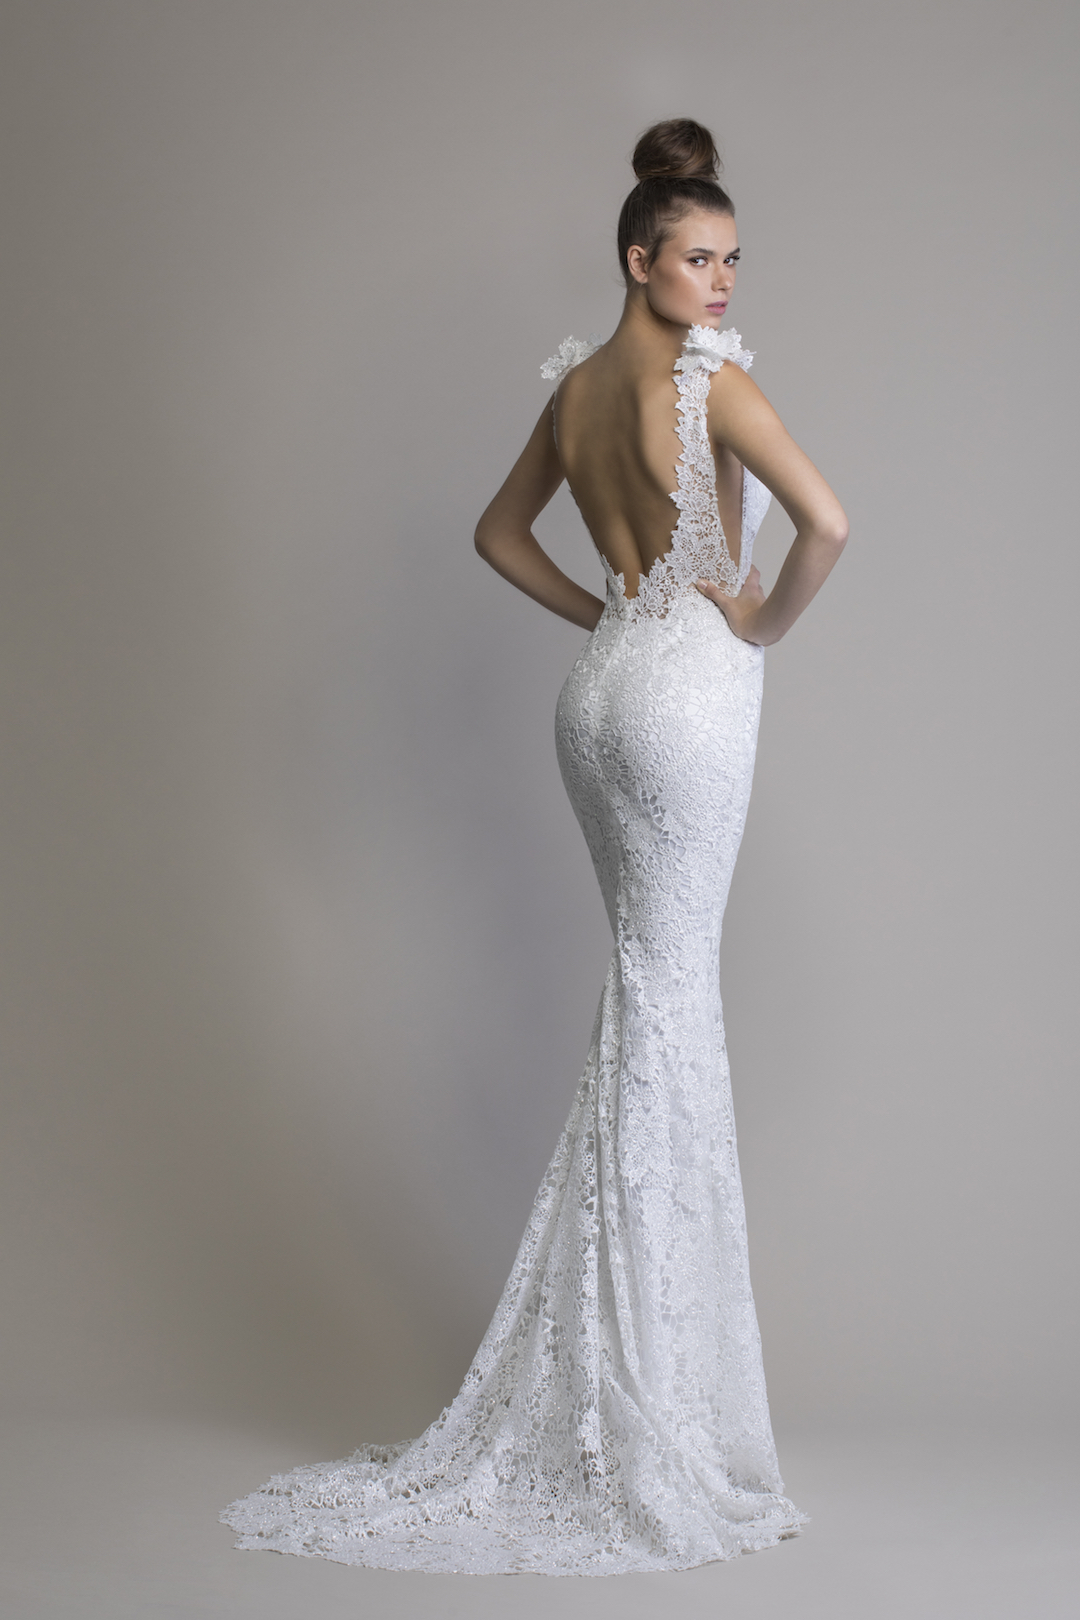 Pnina Tornai's new LOVE 2020 Collection is out! This is style 14760